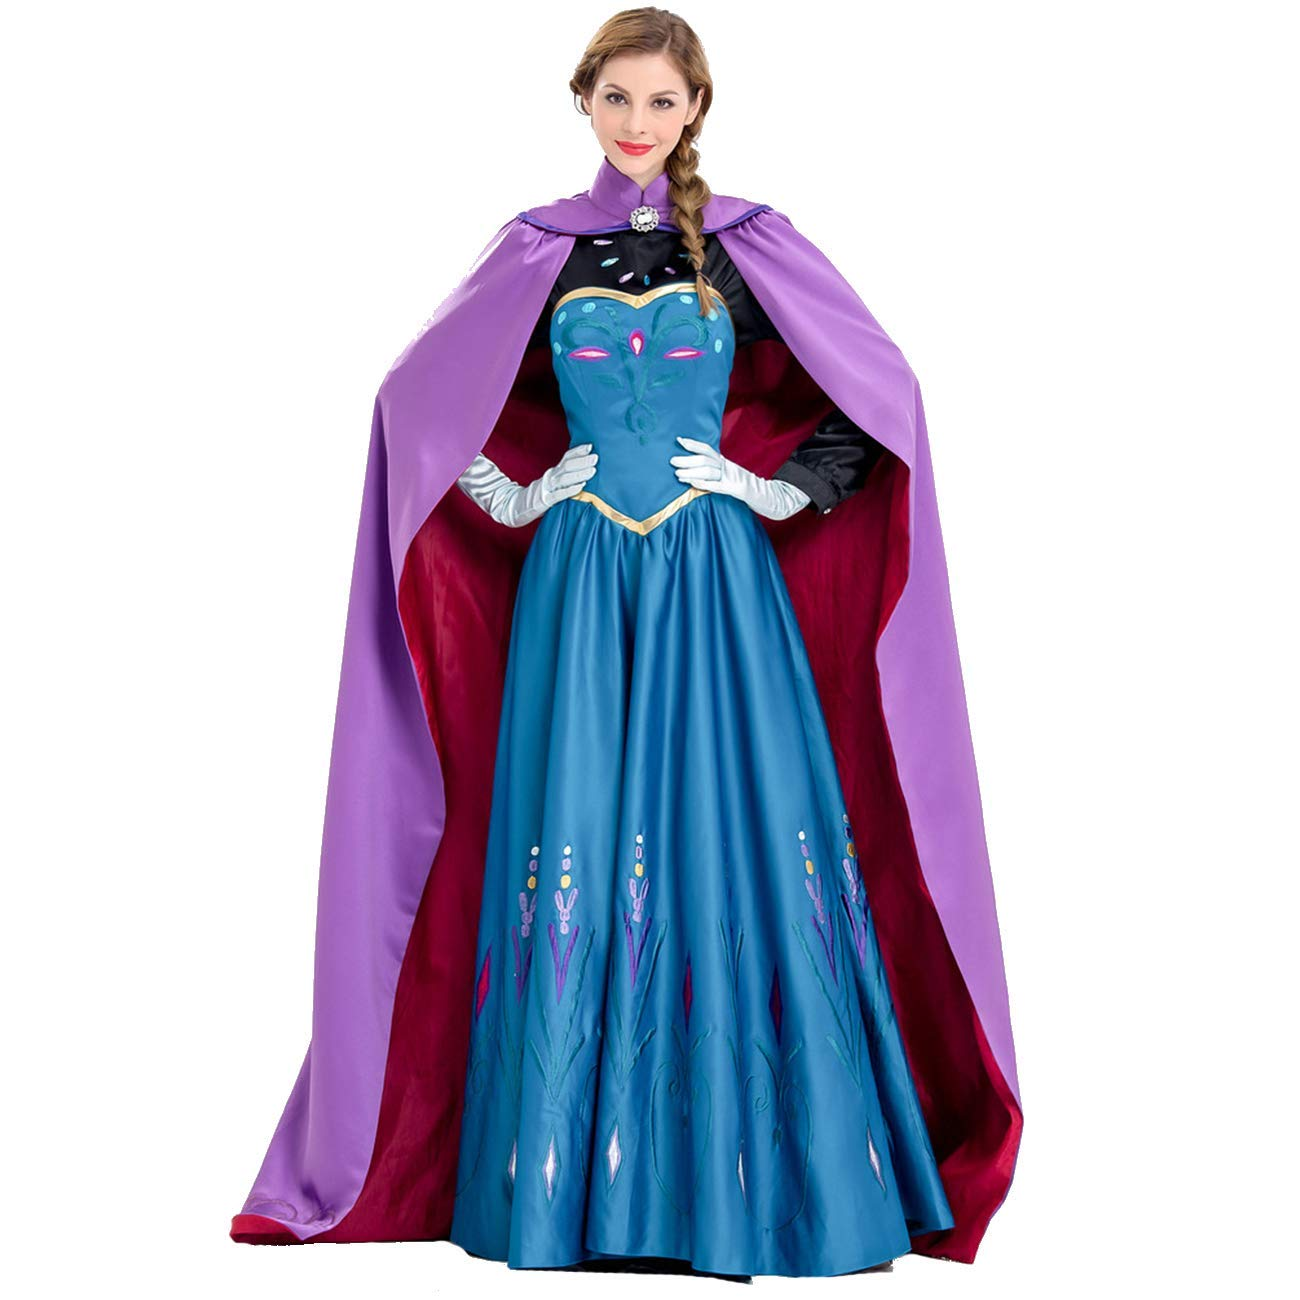 AQTOPS Women Princess Snow Queen Costumes Halloween Role Play Outfits, Purple, Medium